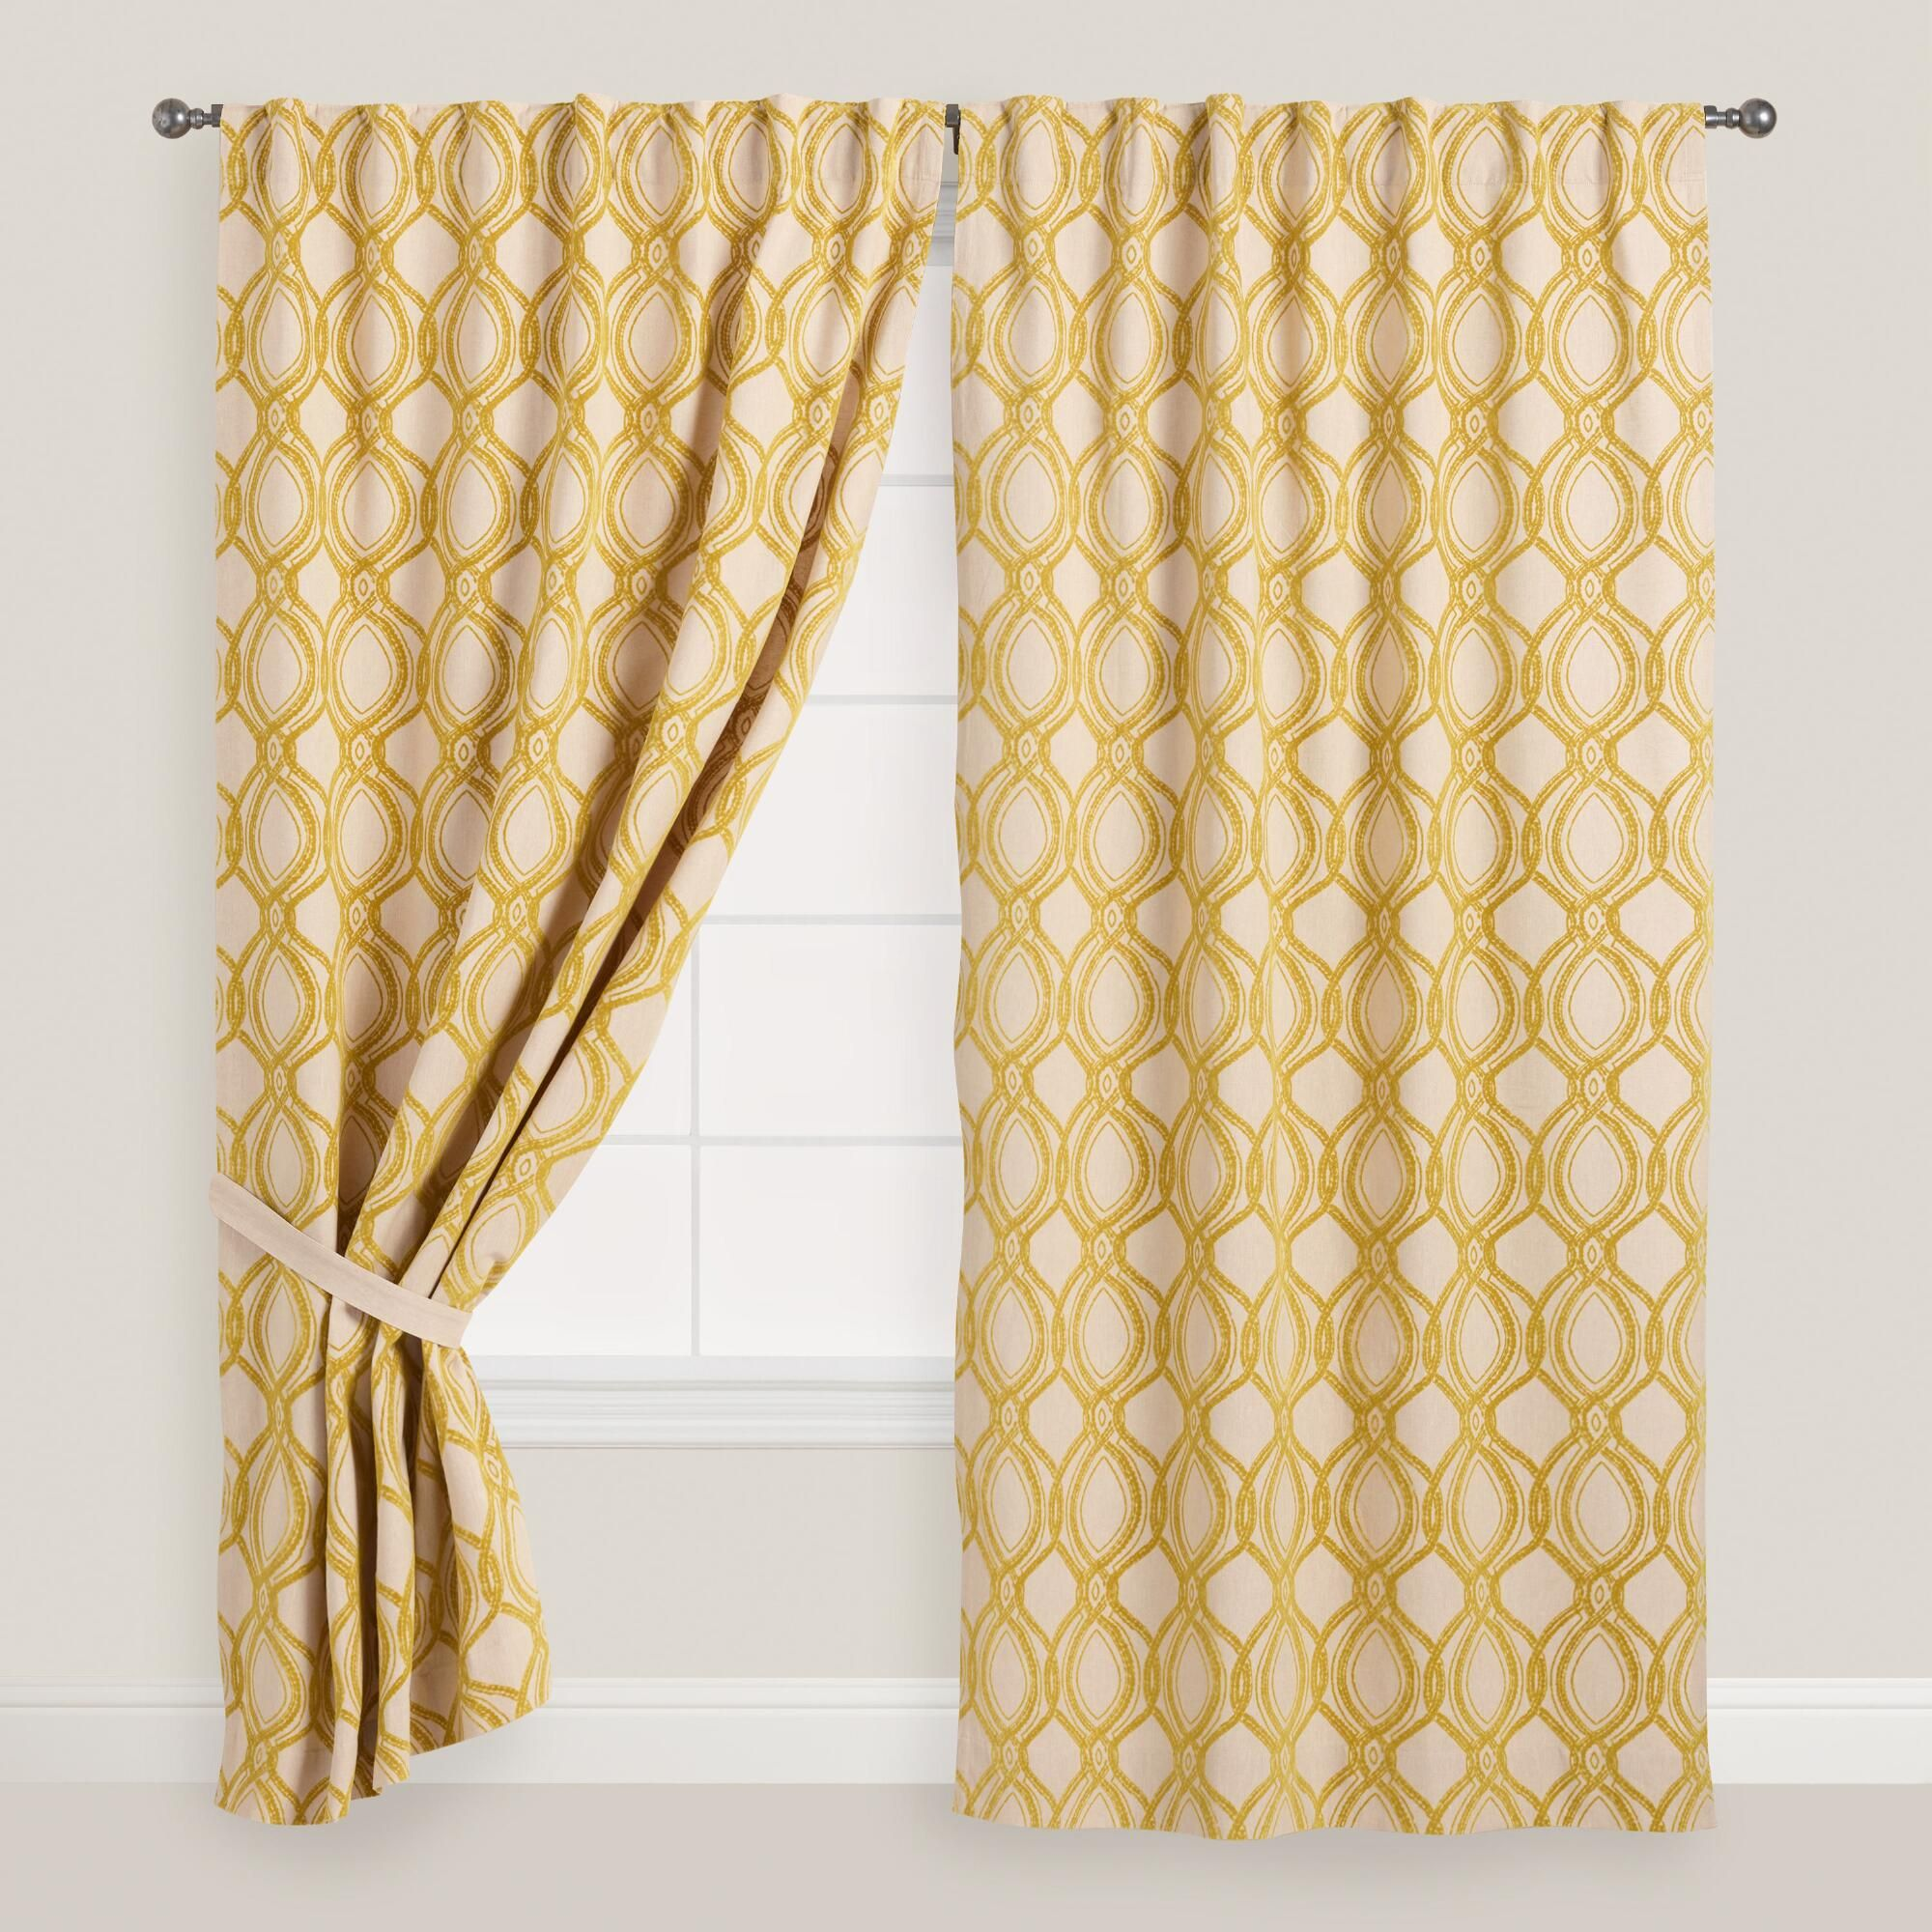 curtain trellis pattern shower target curtains fabric info moroccan concassage